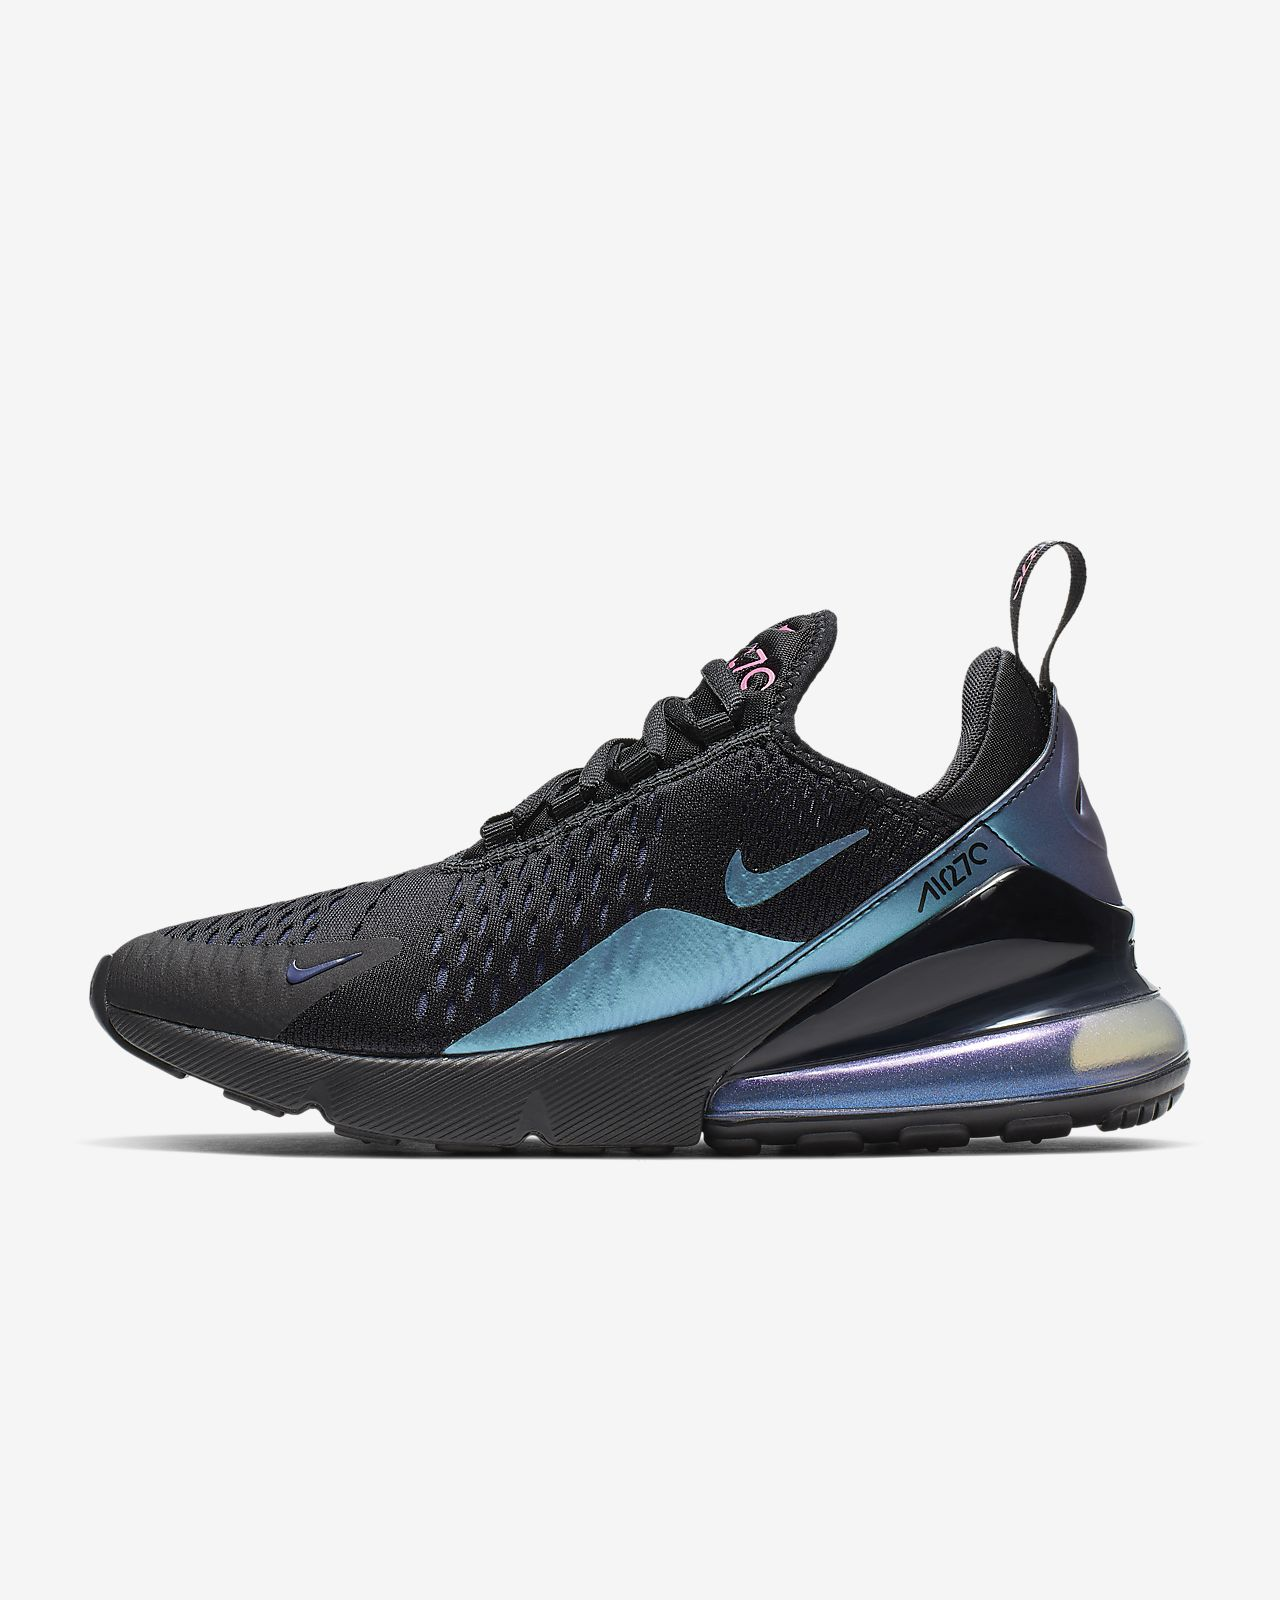 351c7d494228 Nike Air Max 270 Women s Shoe. Nike.com GB